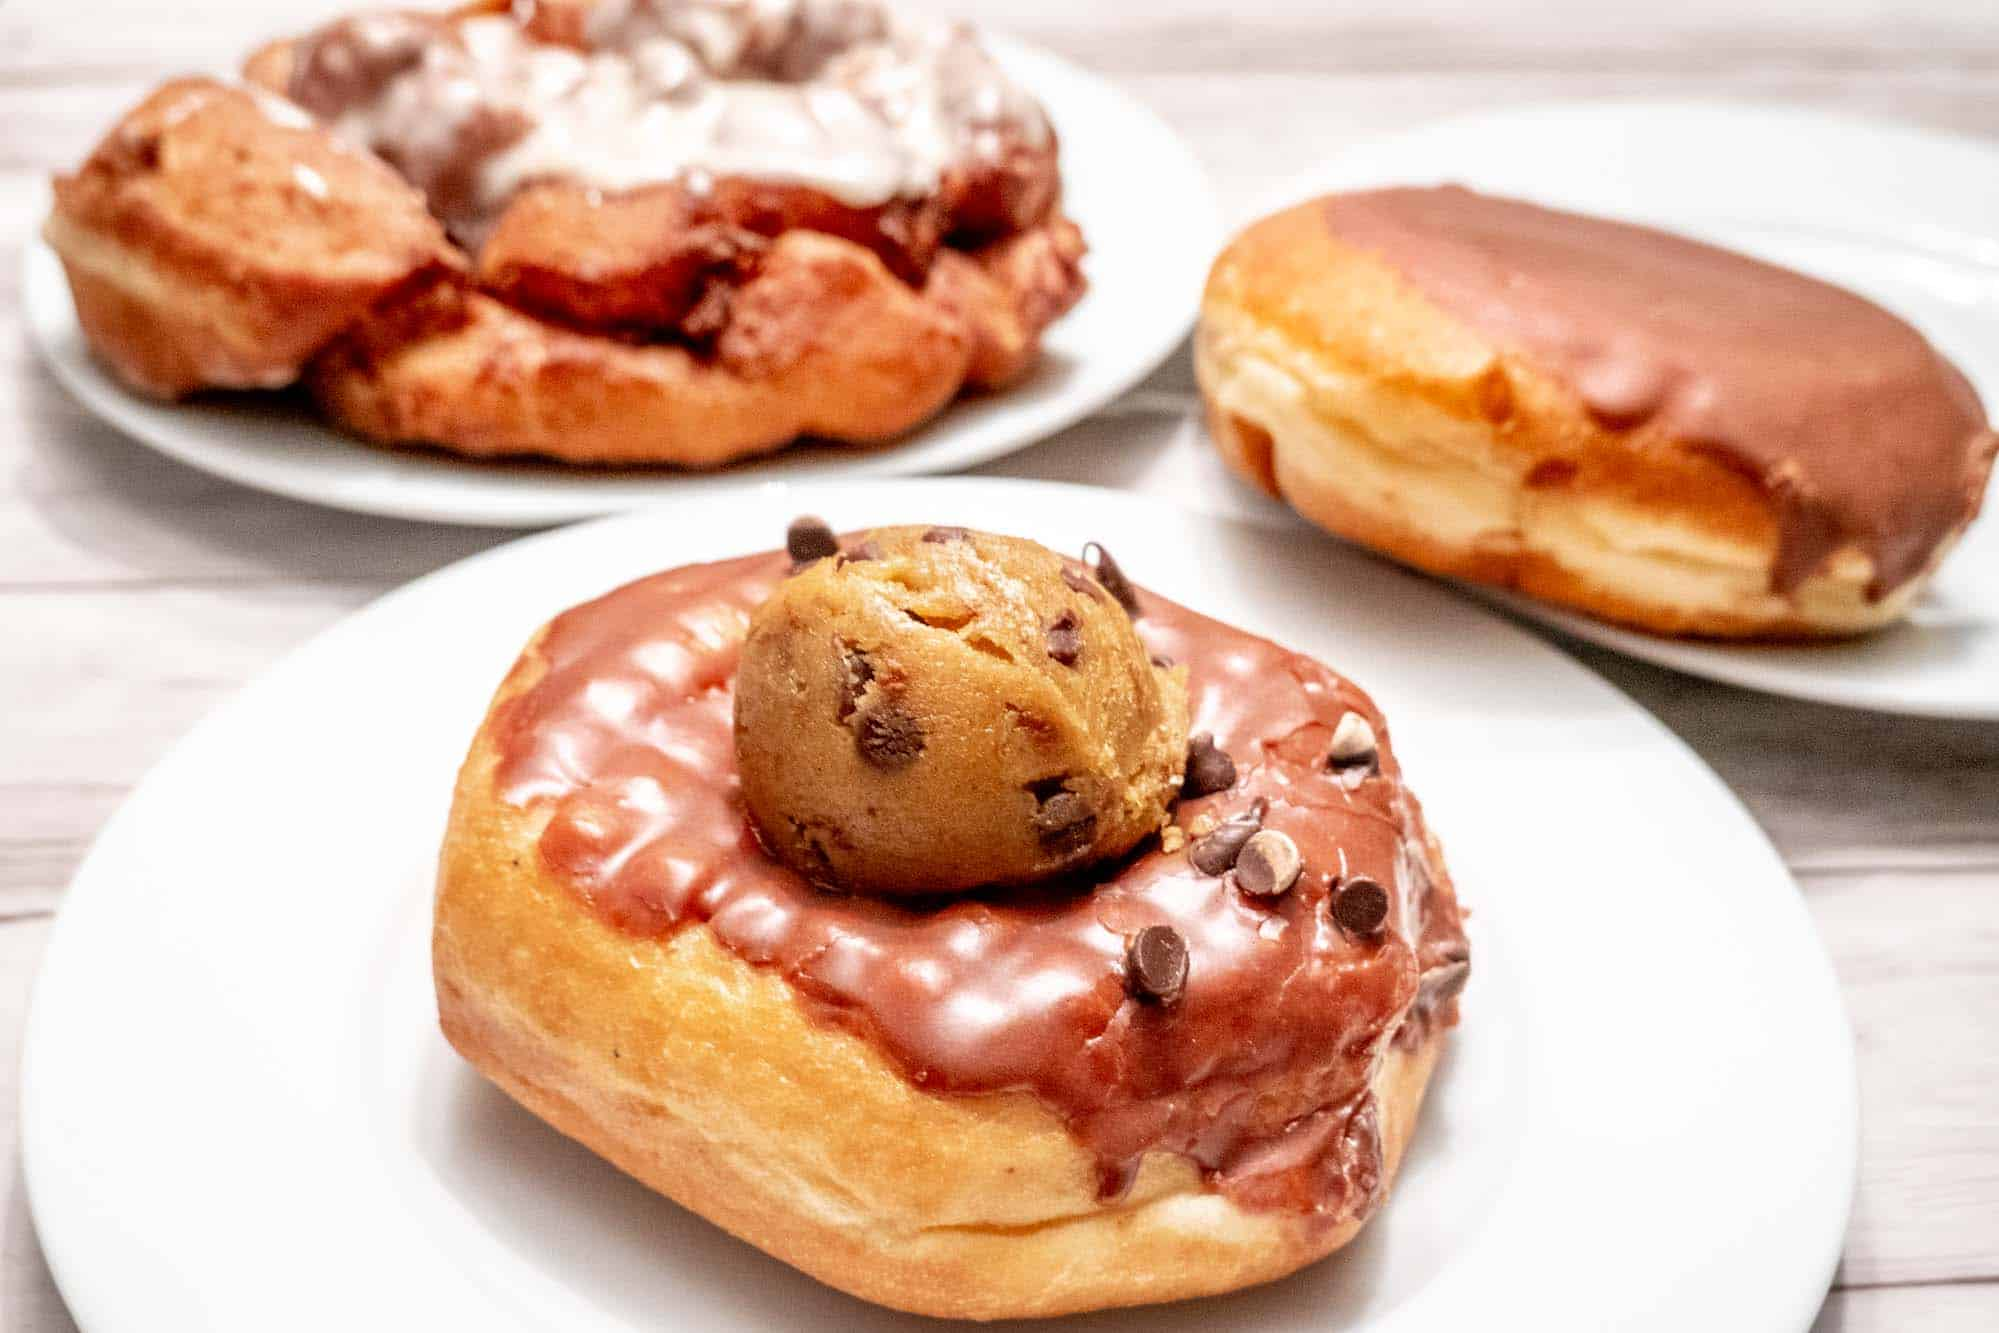 A fritter, a filled donut, and a donut topped with cookie dough on three plates